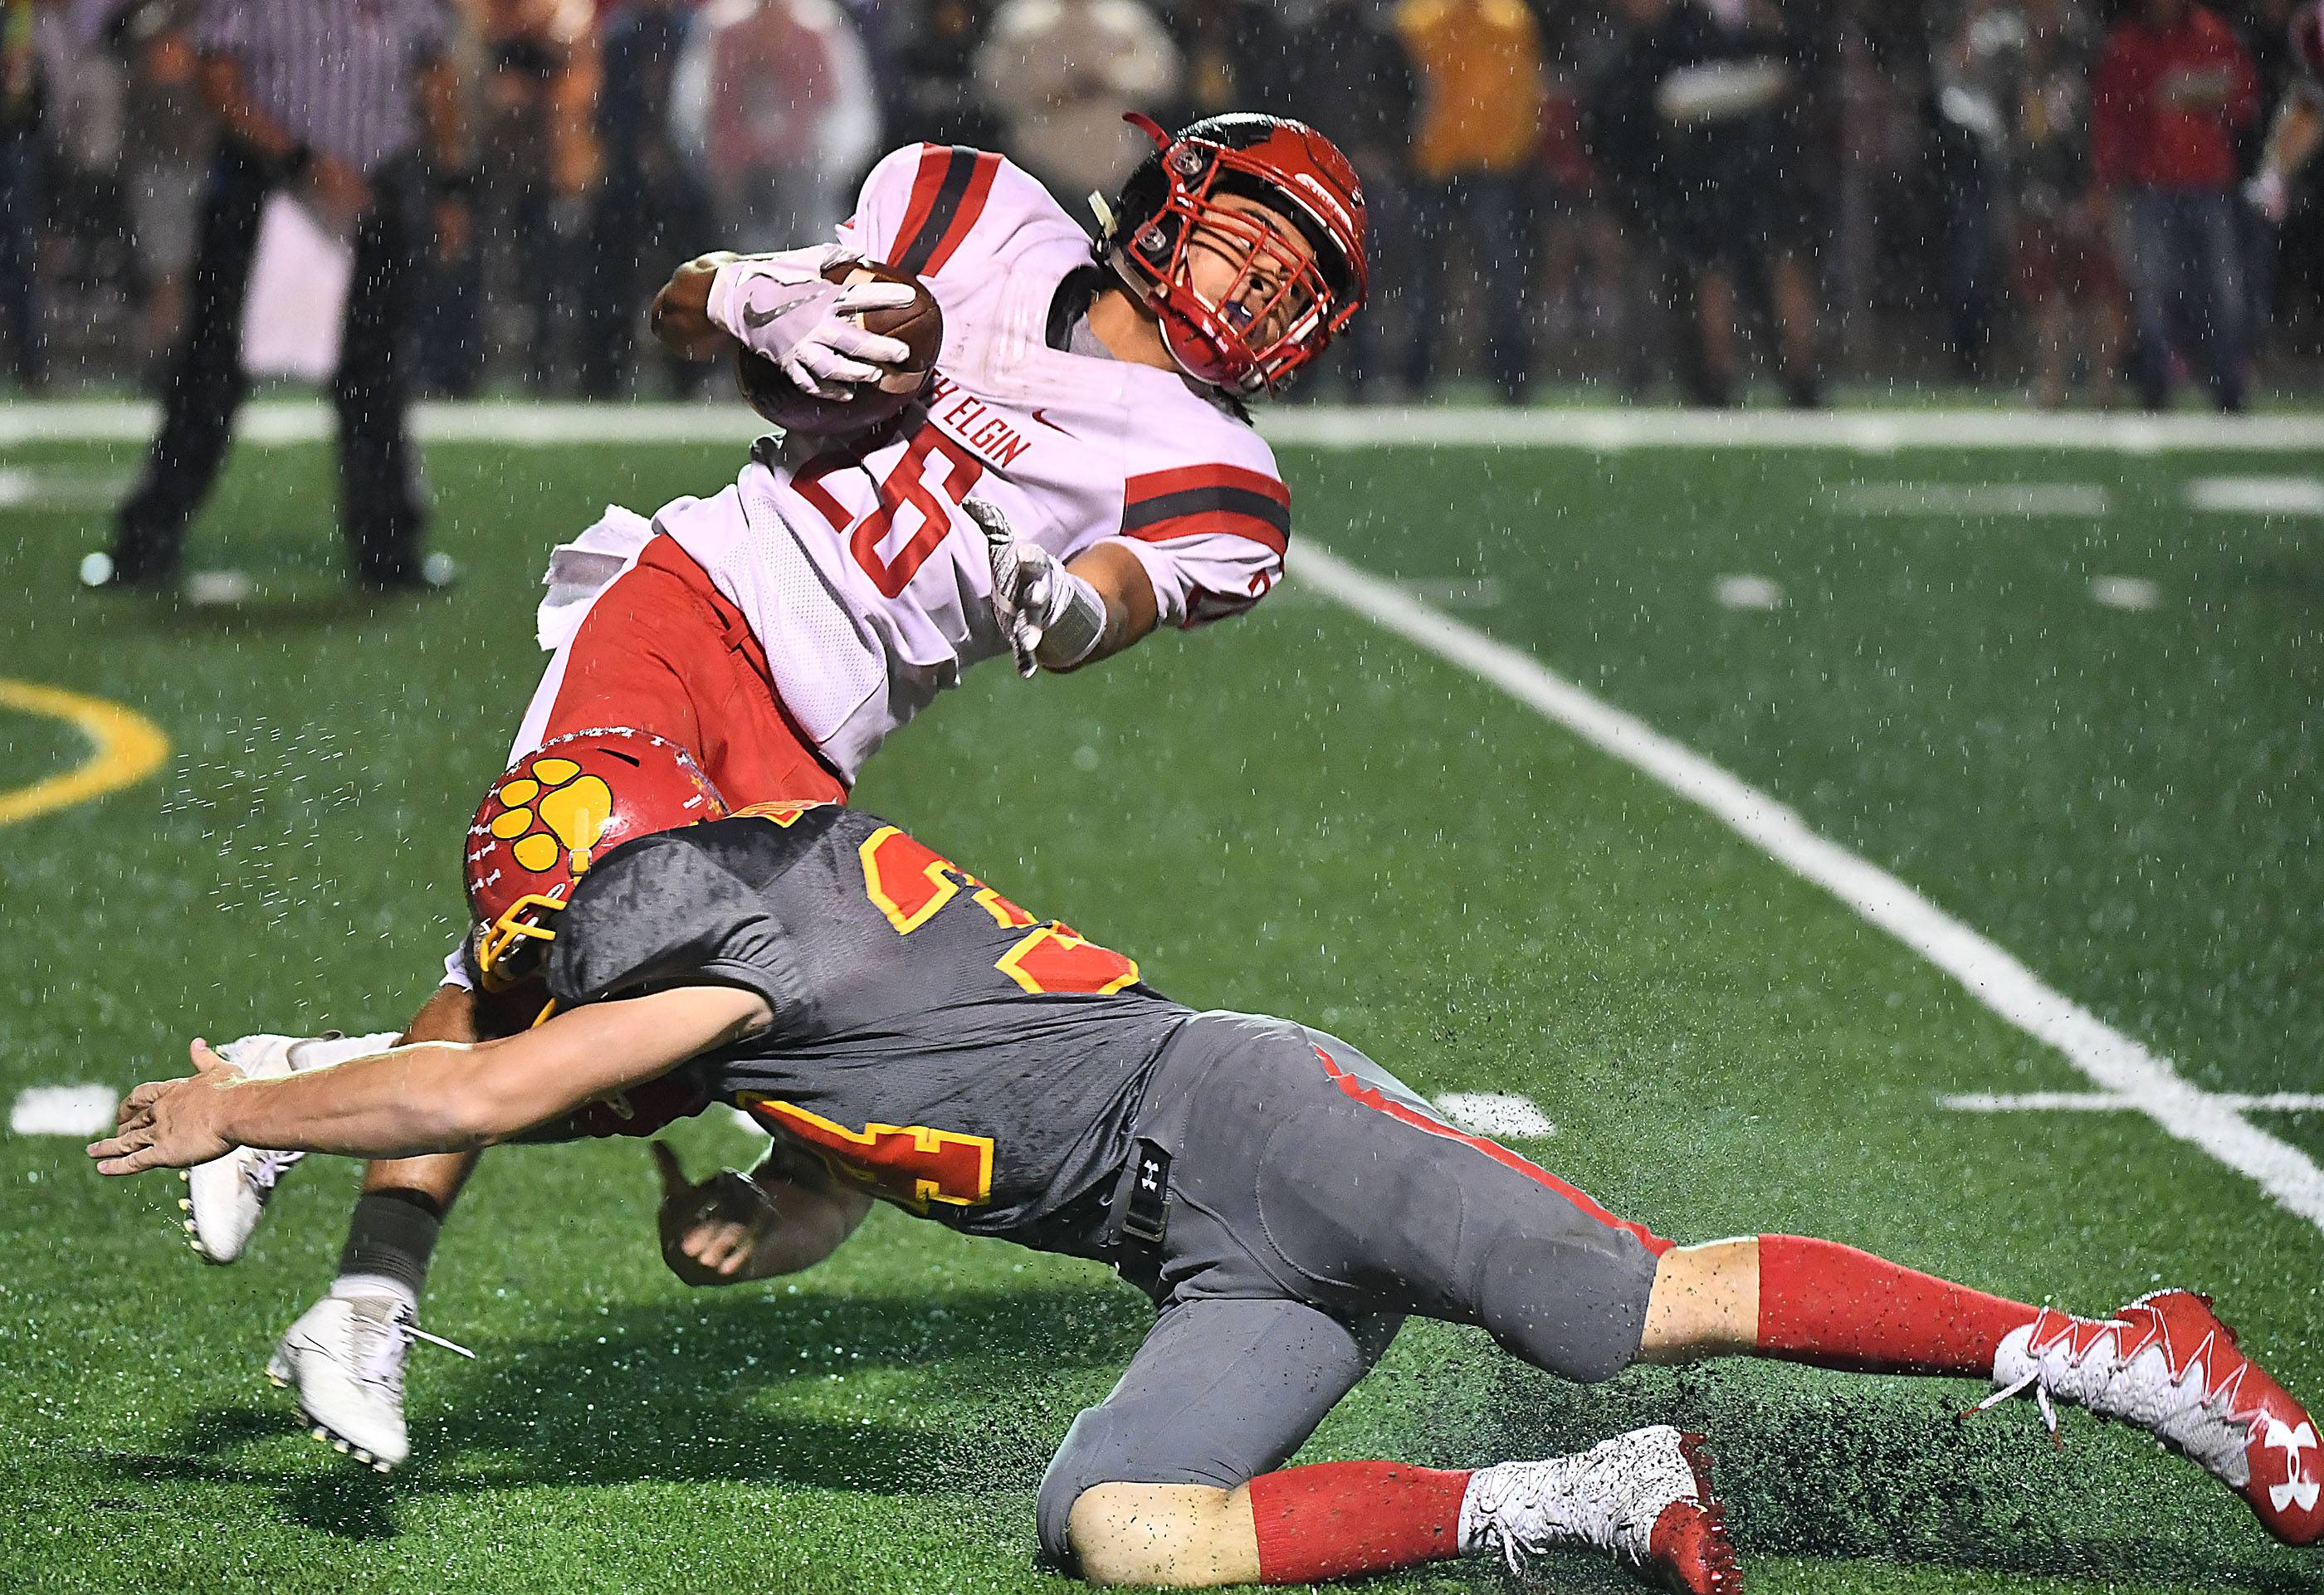 South Elgin's Jaron Wells is brought down by Batavia's Quin Urwiler Friday in Batavia.